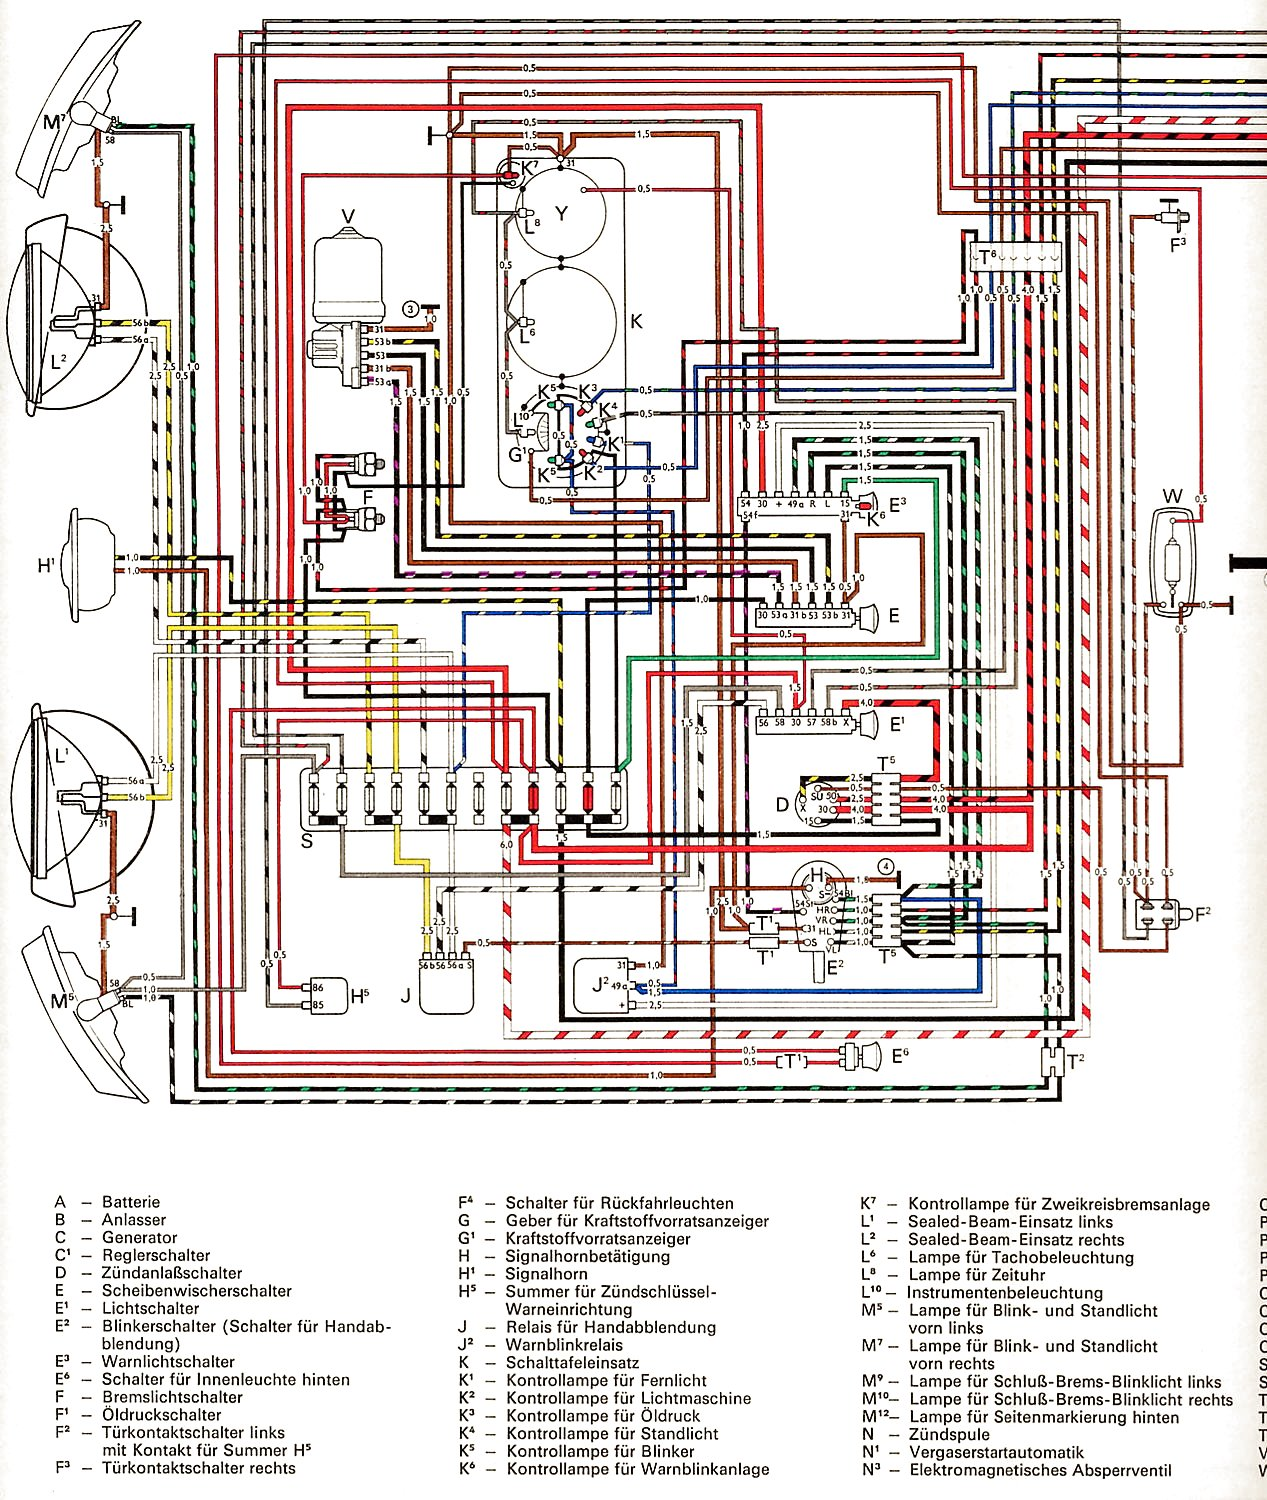 wiring diagram for 1979 vw super beetle wiring diagram database 74 super beetle and beetle wiring diagram vintagebus com vw bus (and other) wiring diagrams 74 super beetle and beetle wiring